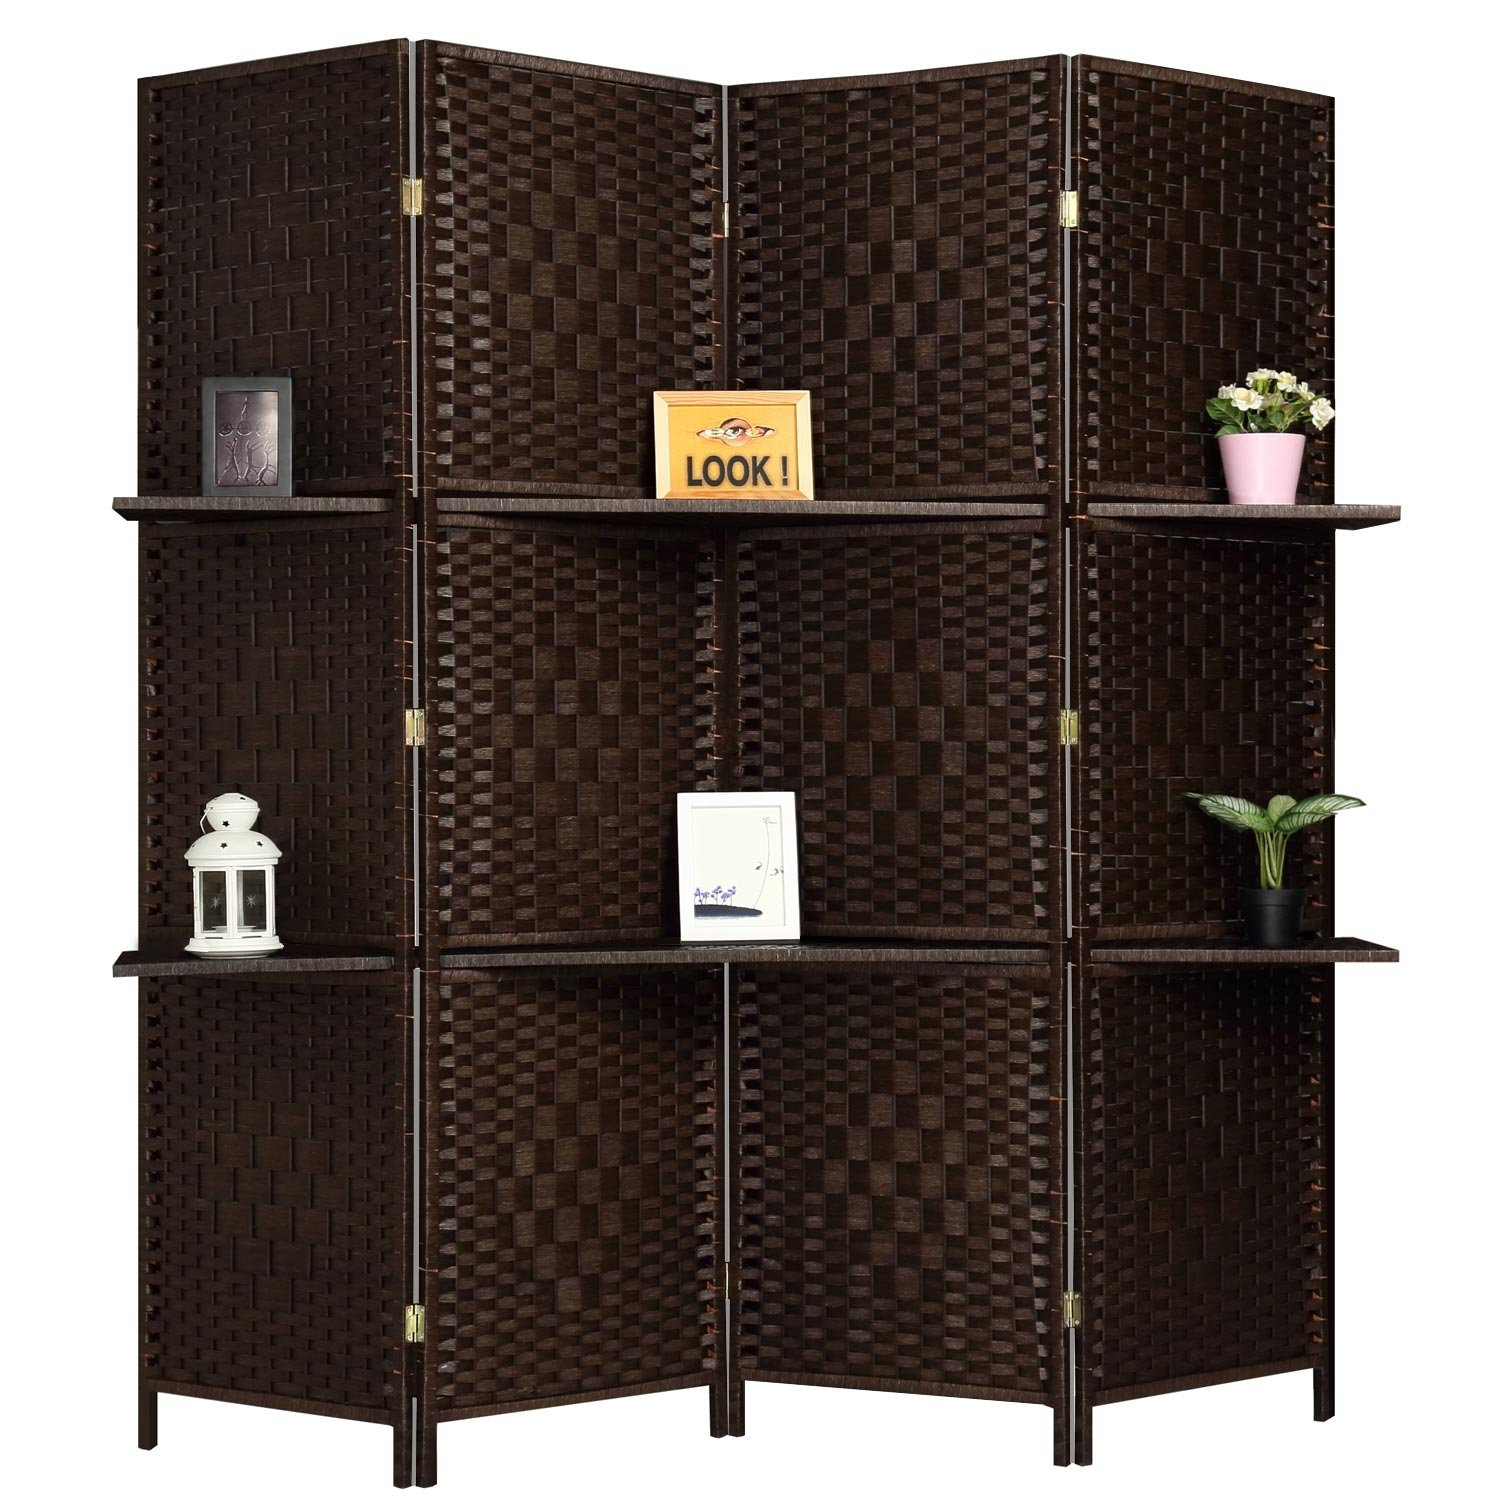 Amazon Com Rhf 6 Ft Tall Extra Wide Diamond Room Divider Wall Divider Room Dividers And Folding Privacy Screens Partition Wall With 2 Display Shelves Room Divider With Shelves Darkmocha 4 Panels 2 Shelves Furniture Decor